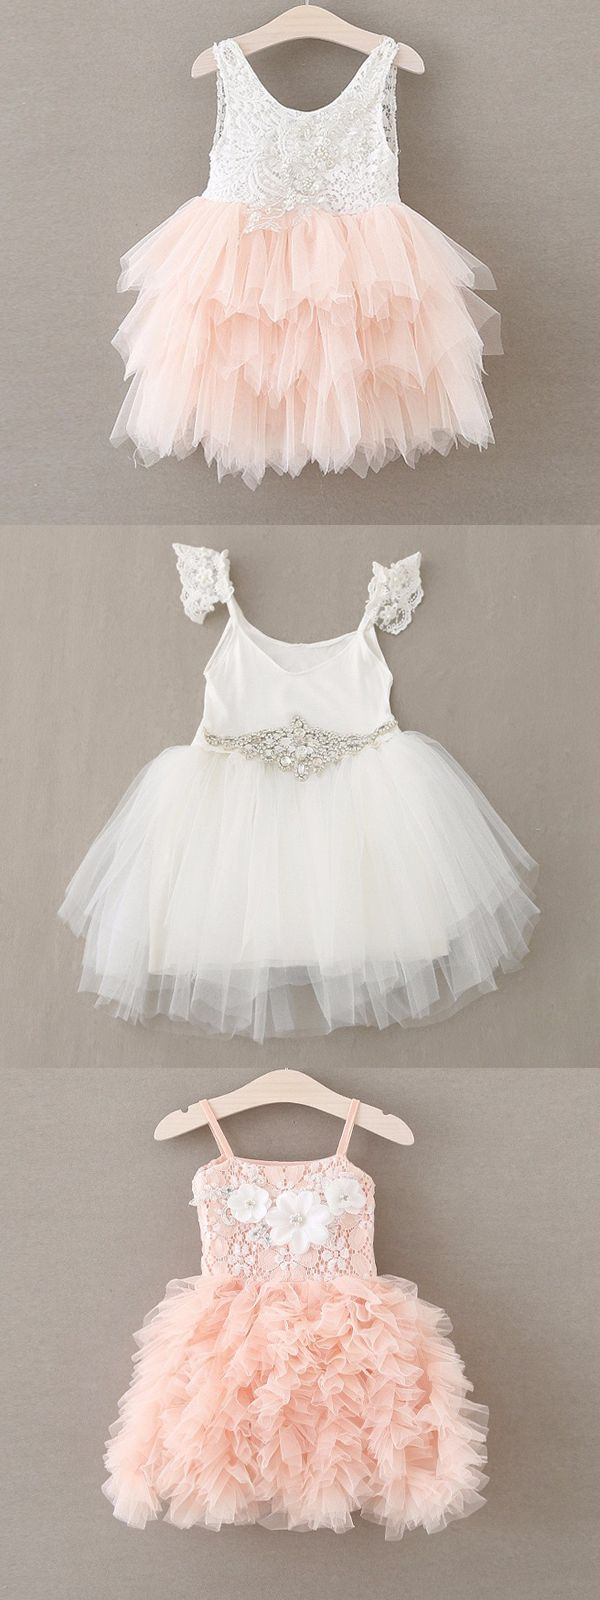 17  best ideas about baby girl dresses on pinterest